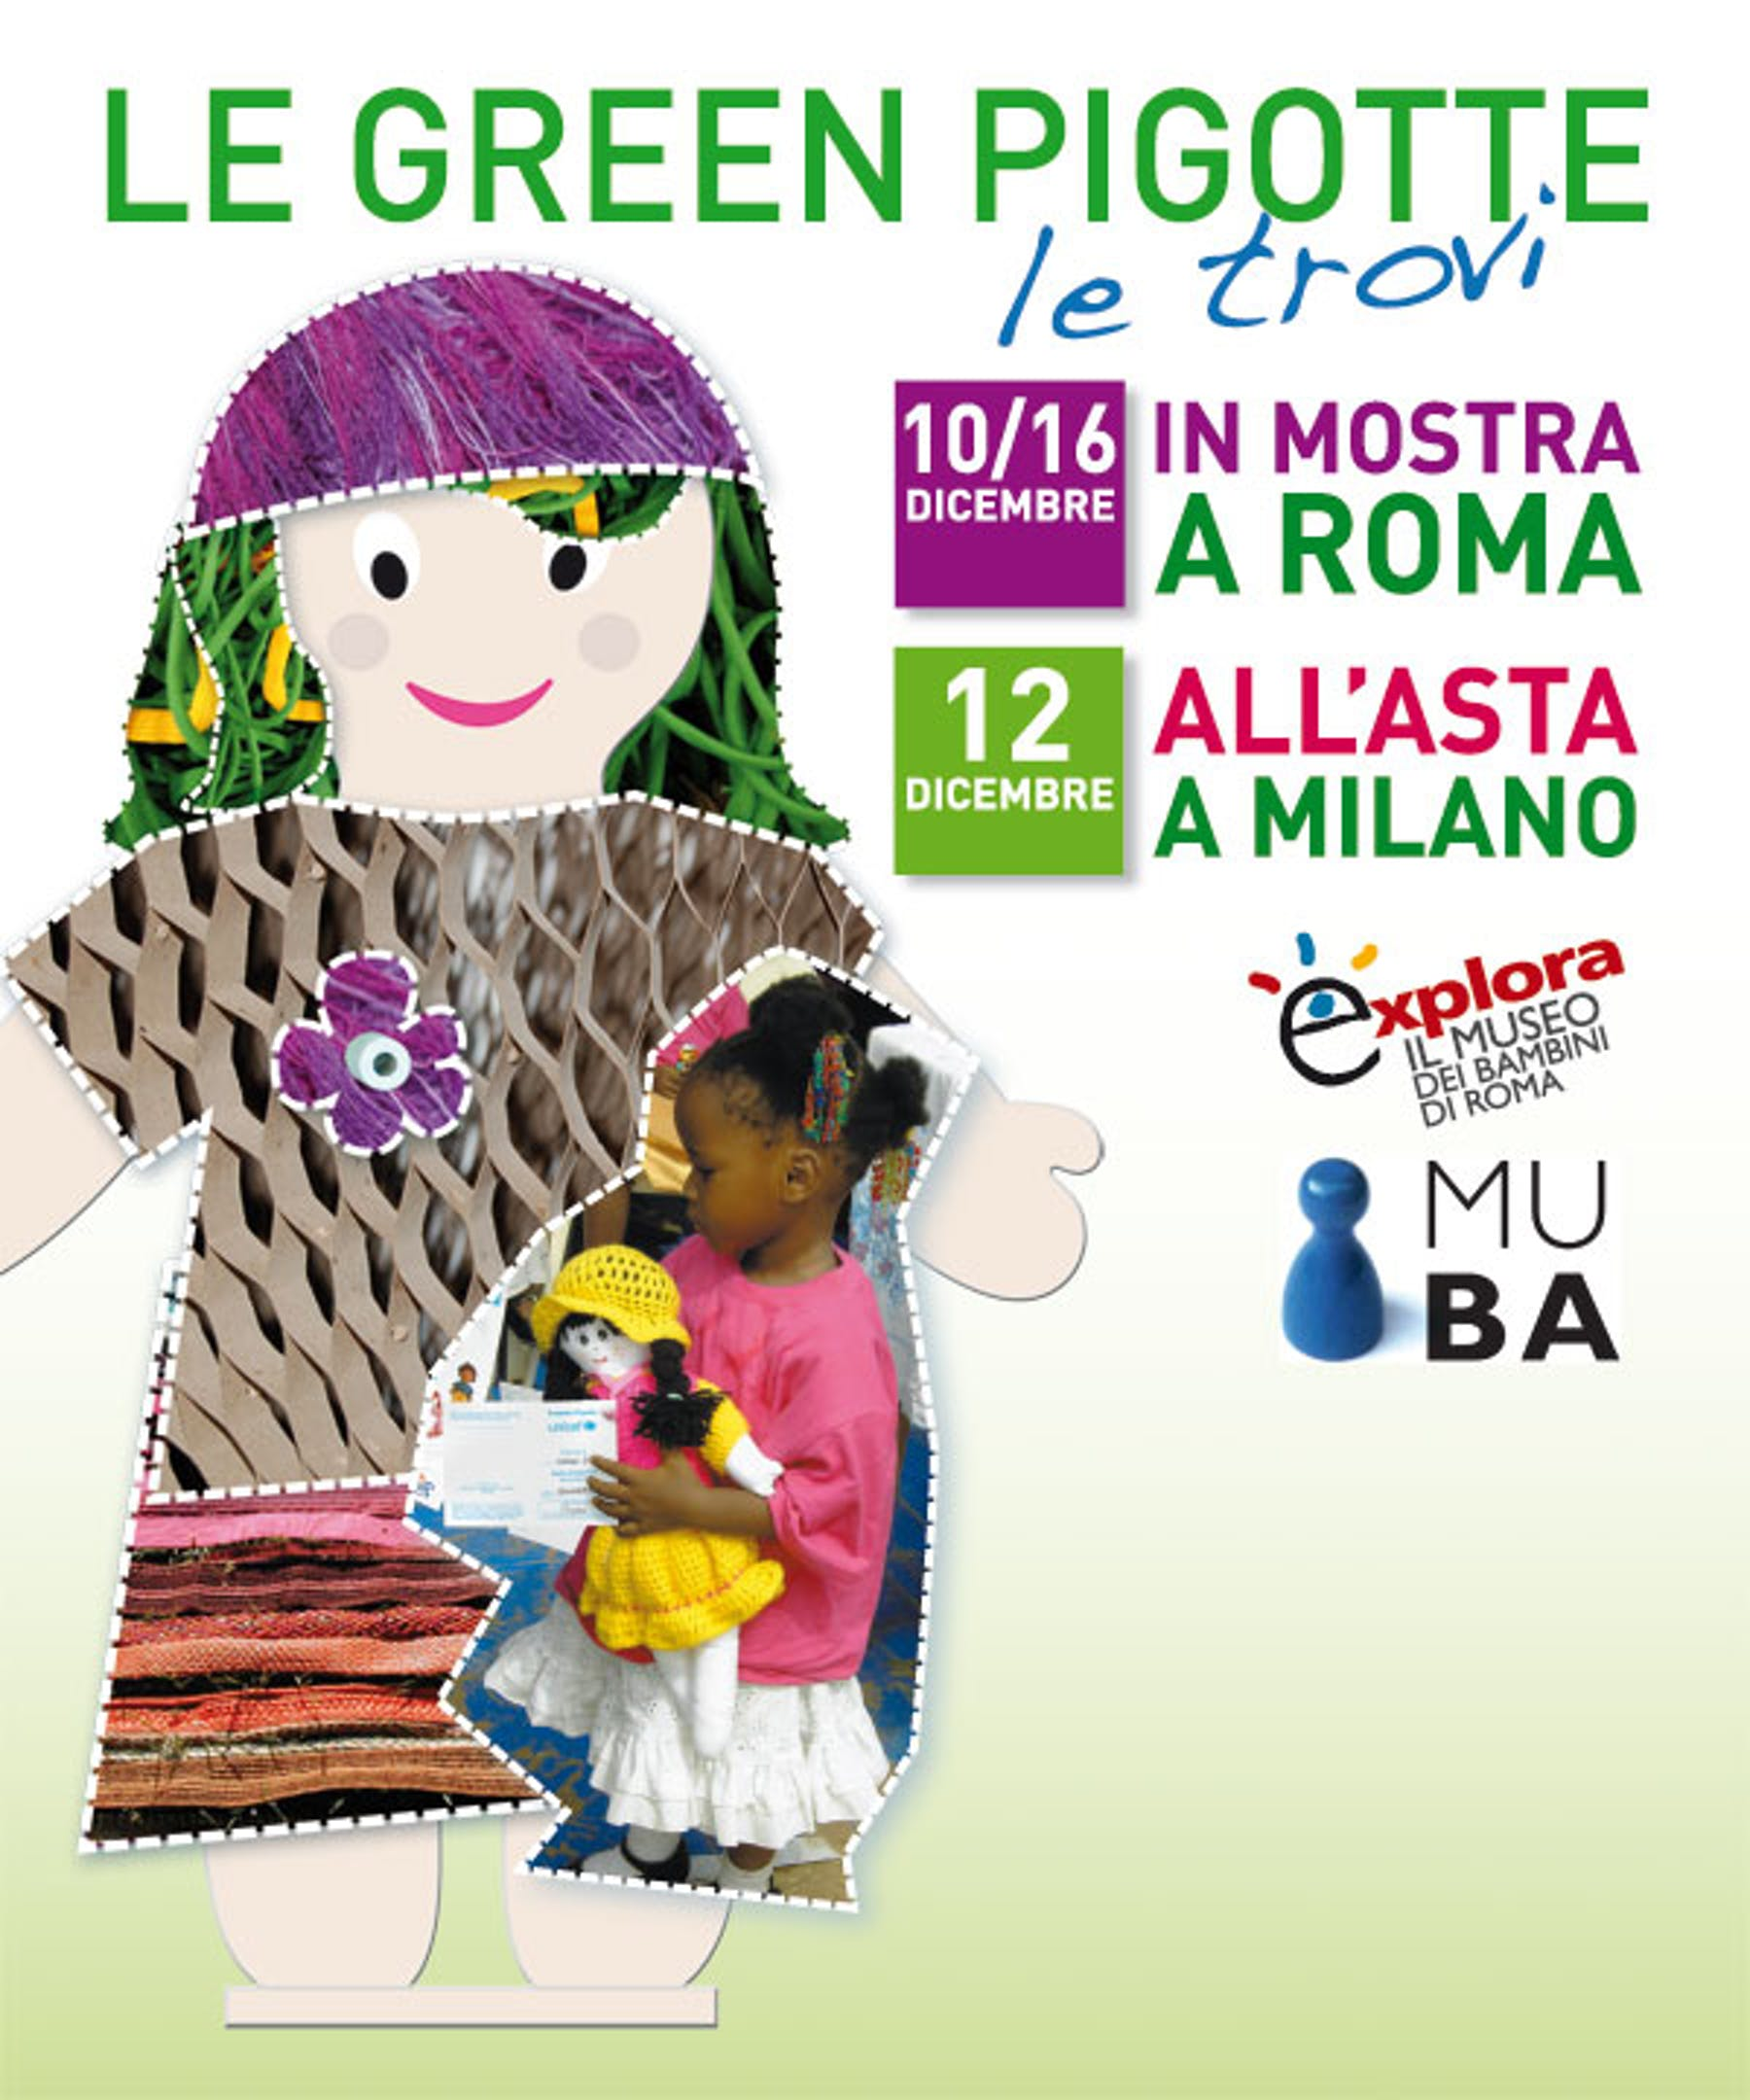 Le Green Pigotte dell'UNICEF